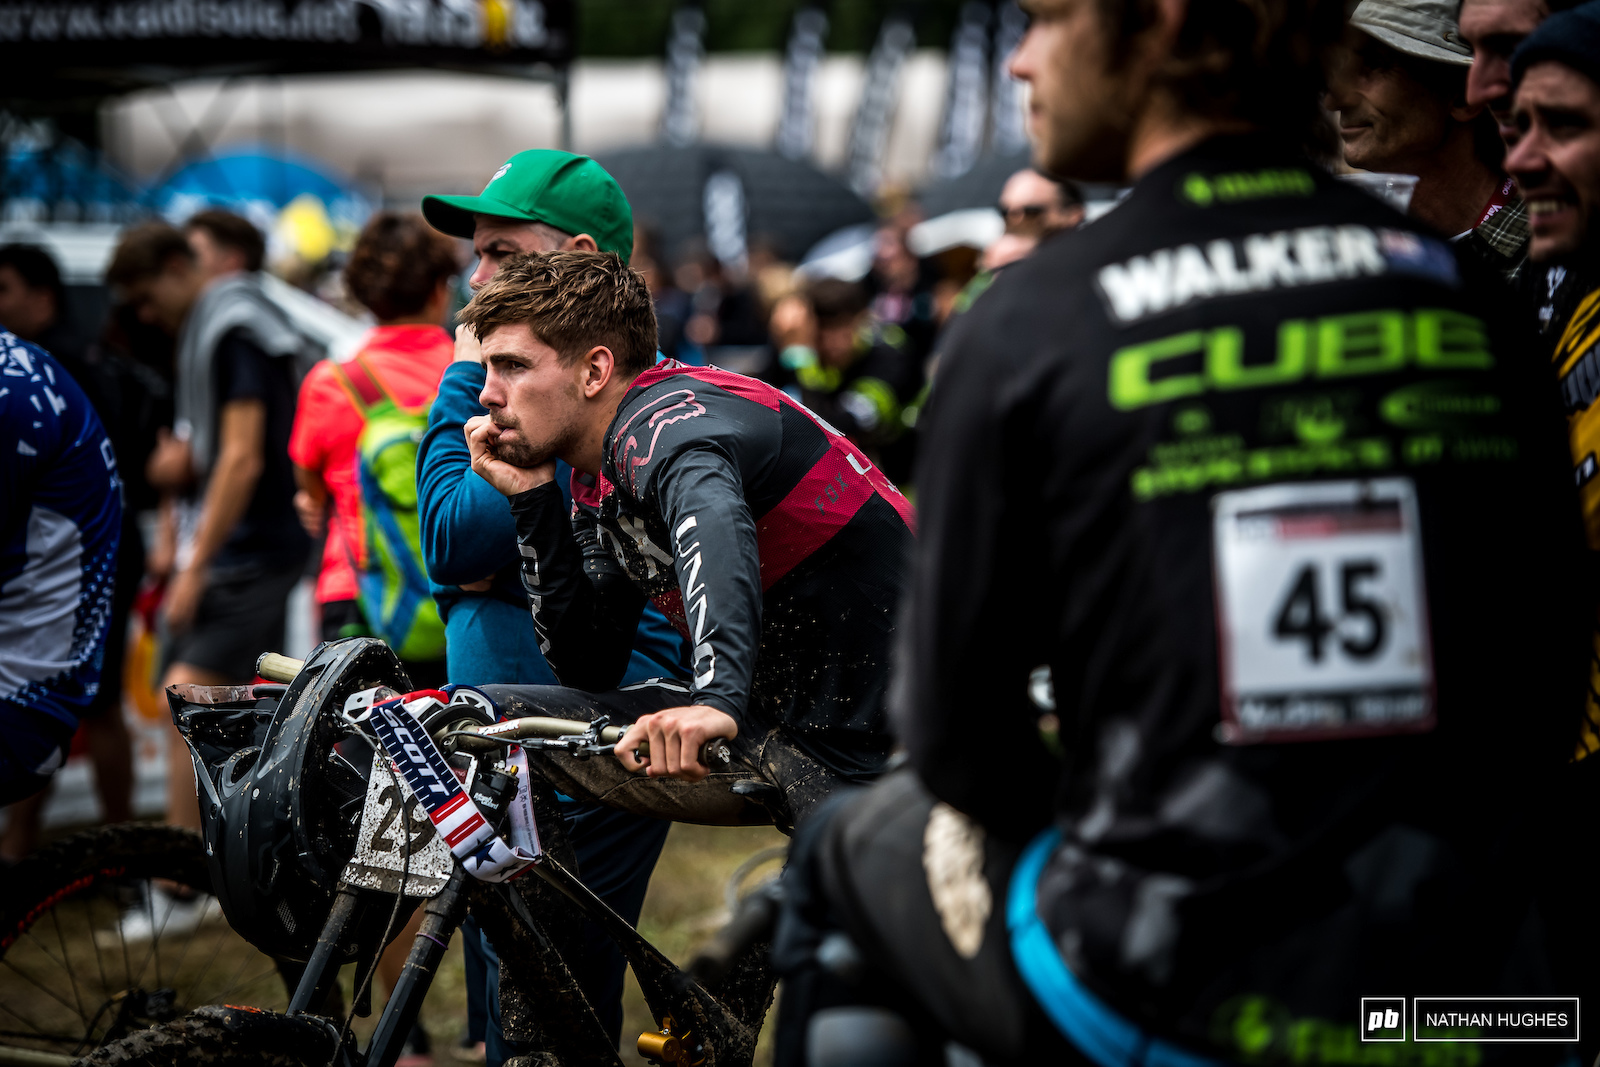 Taylor Vernon on the anxious wait to see if he made the cut after a survival run in the mud.